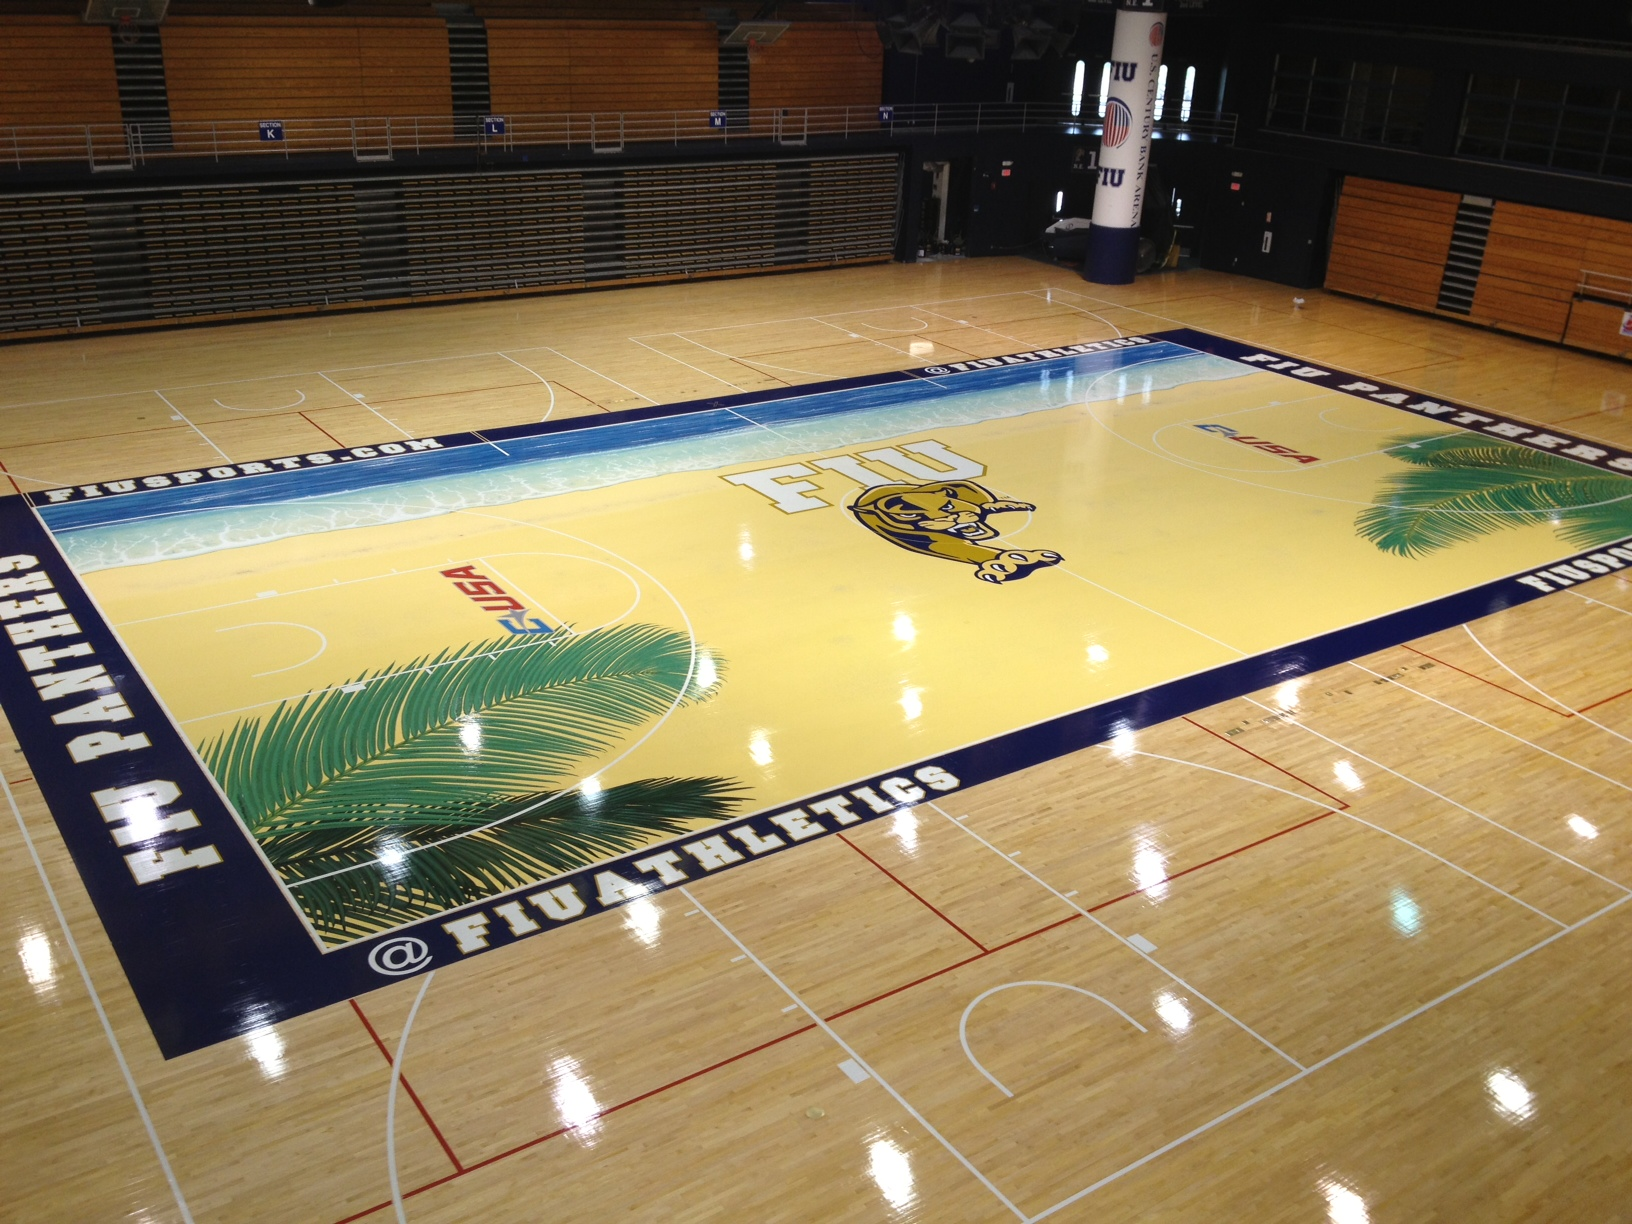 floors parquet dalla gym university personalized volleyball sportfloors affected certified badminton fiba approved with multifunctional floor riva its and the sports kong hong flooring about entire installation signs of for basketball